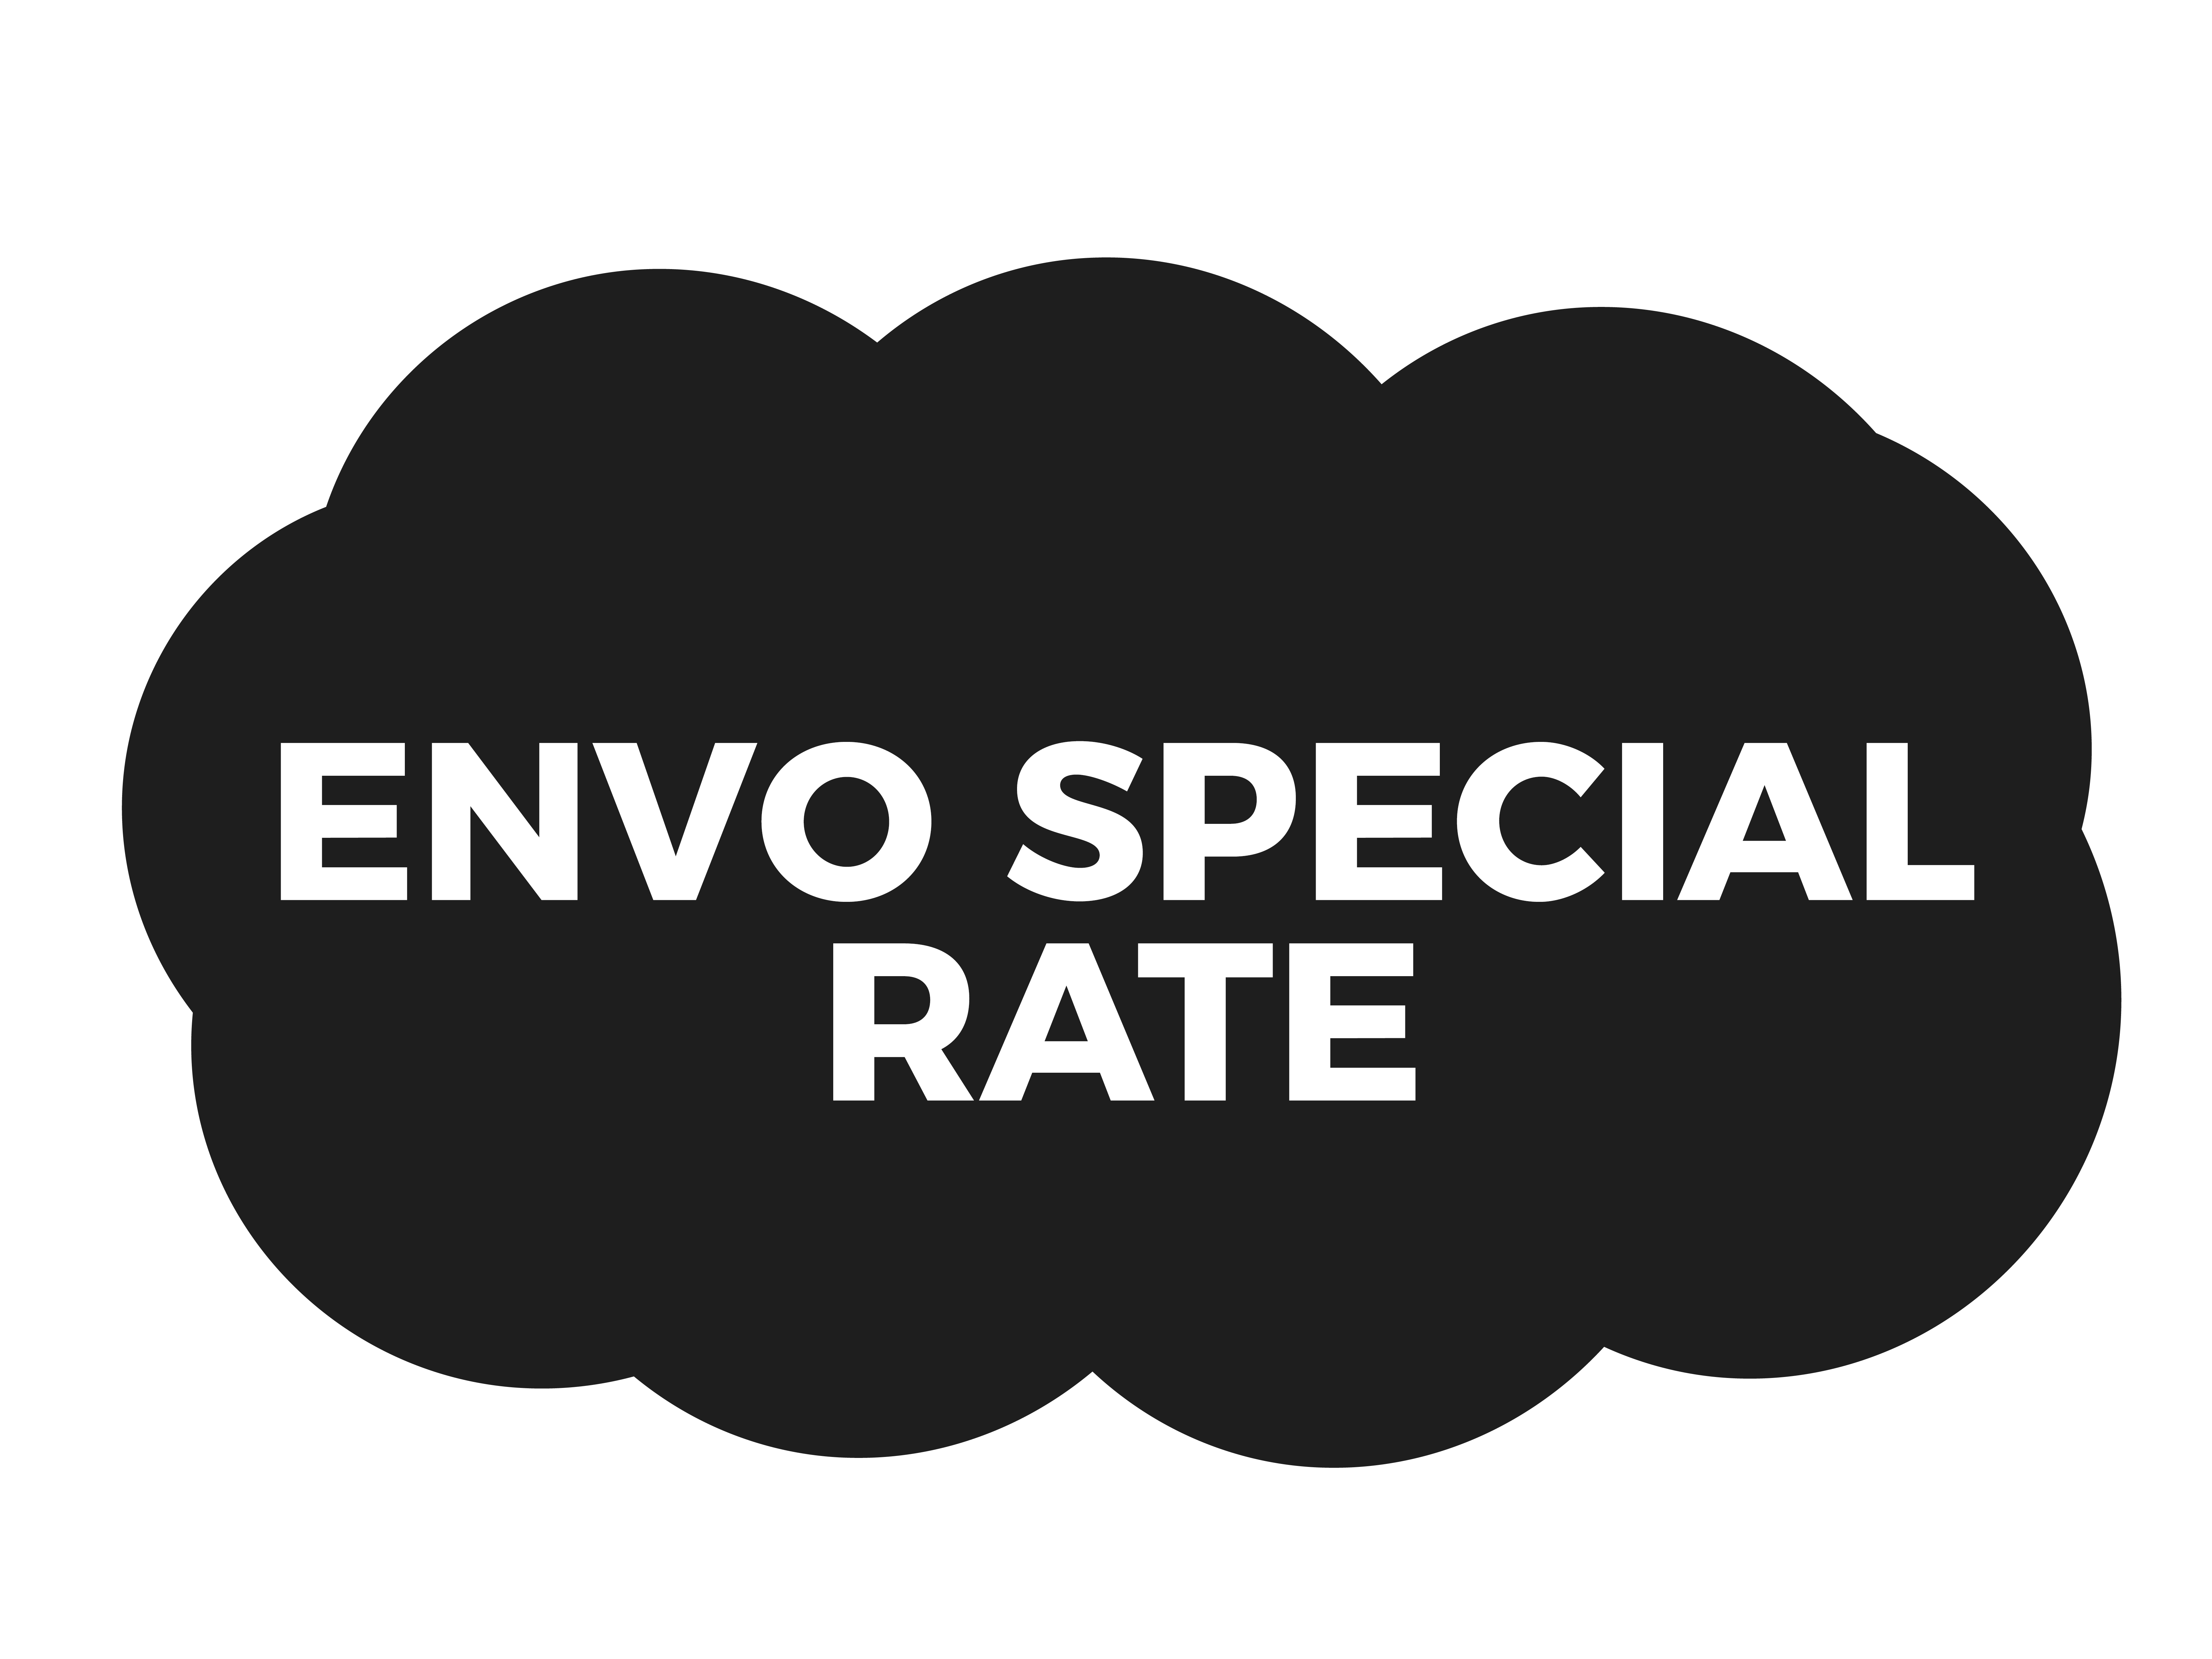 Envo Special Rate!